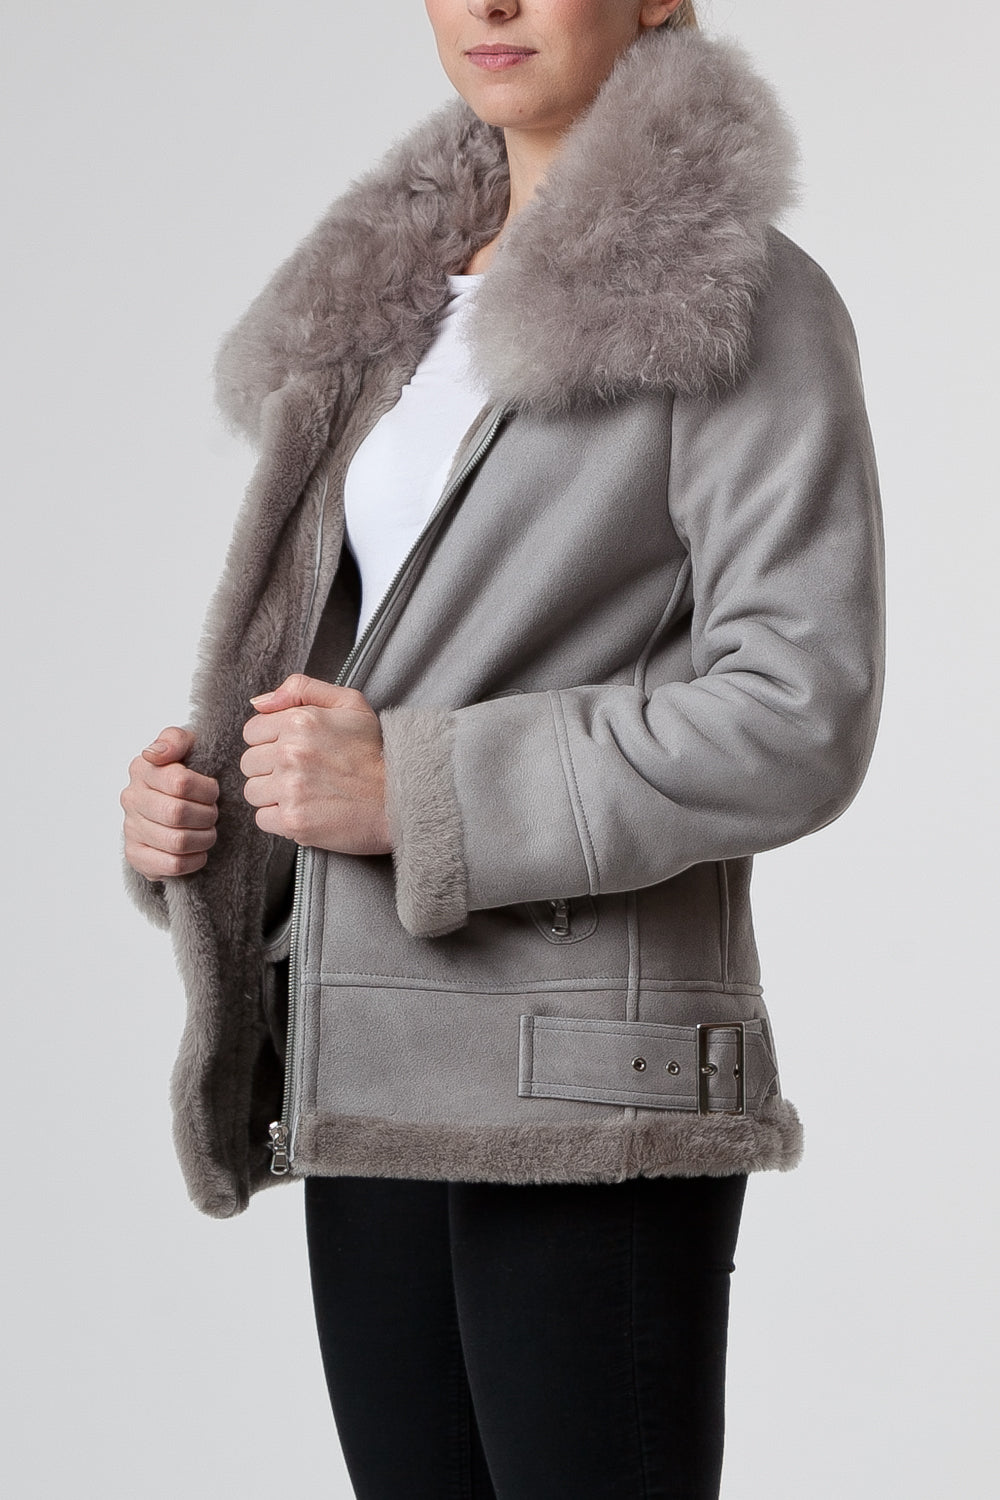 Chiodo Grigio Brown Womenswear